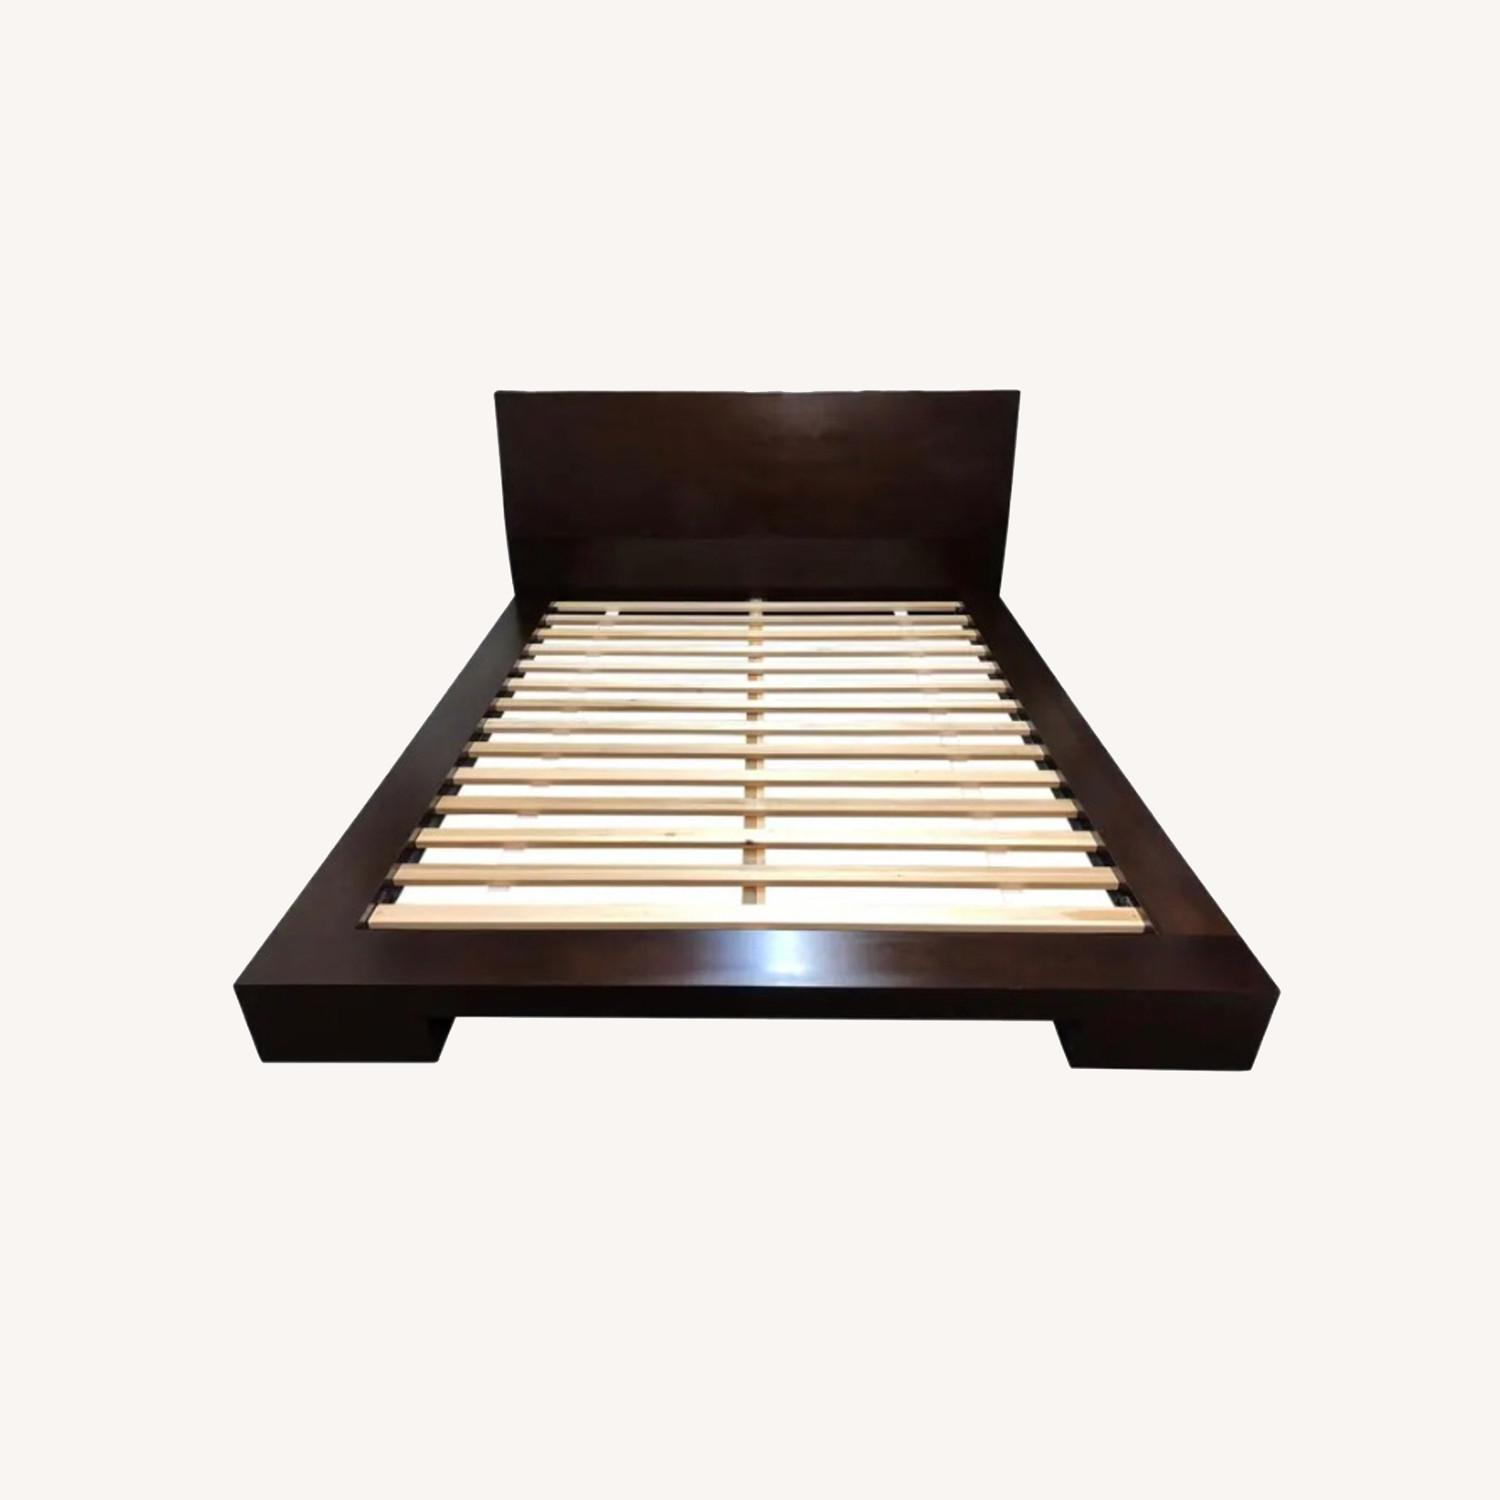 Crate and Barrel Queen Asher Bed - image-0